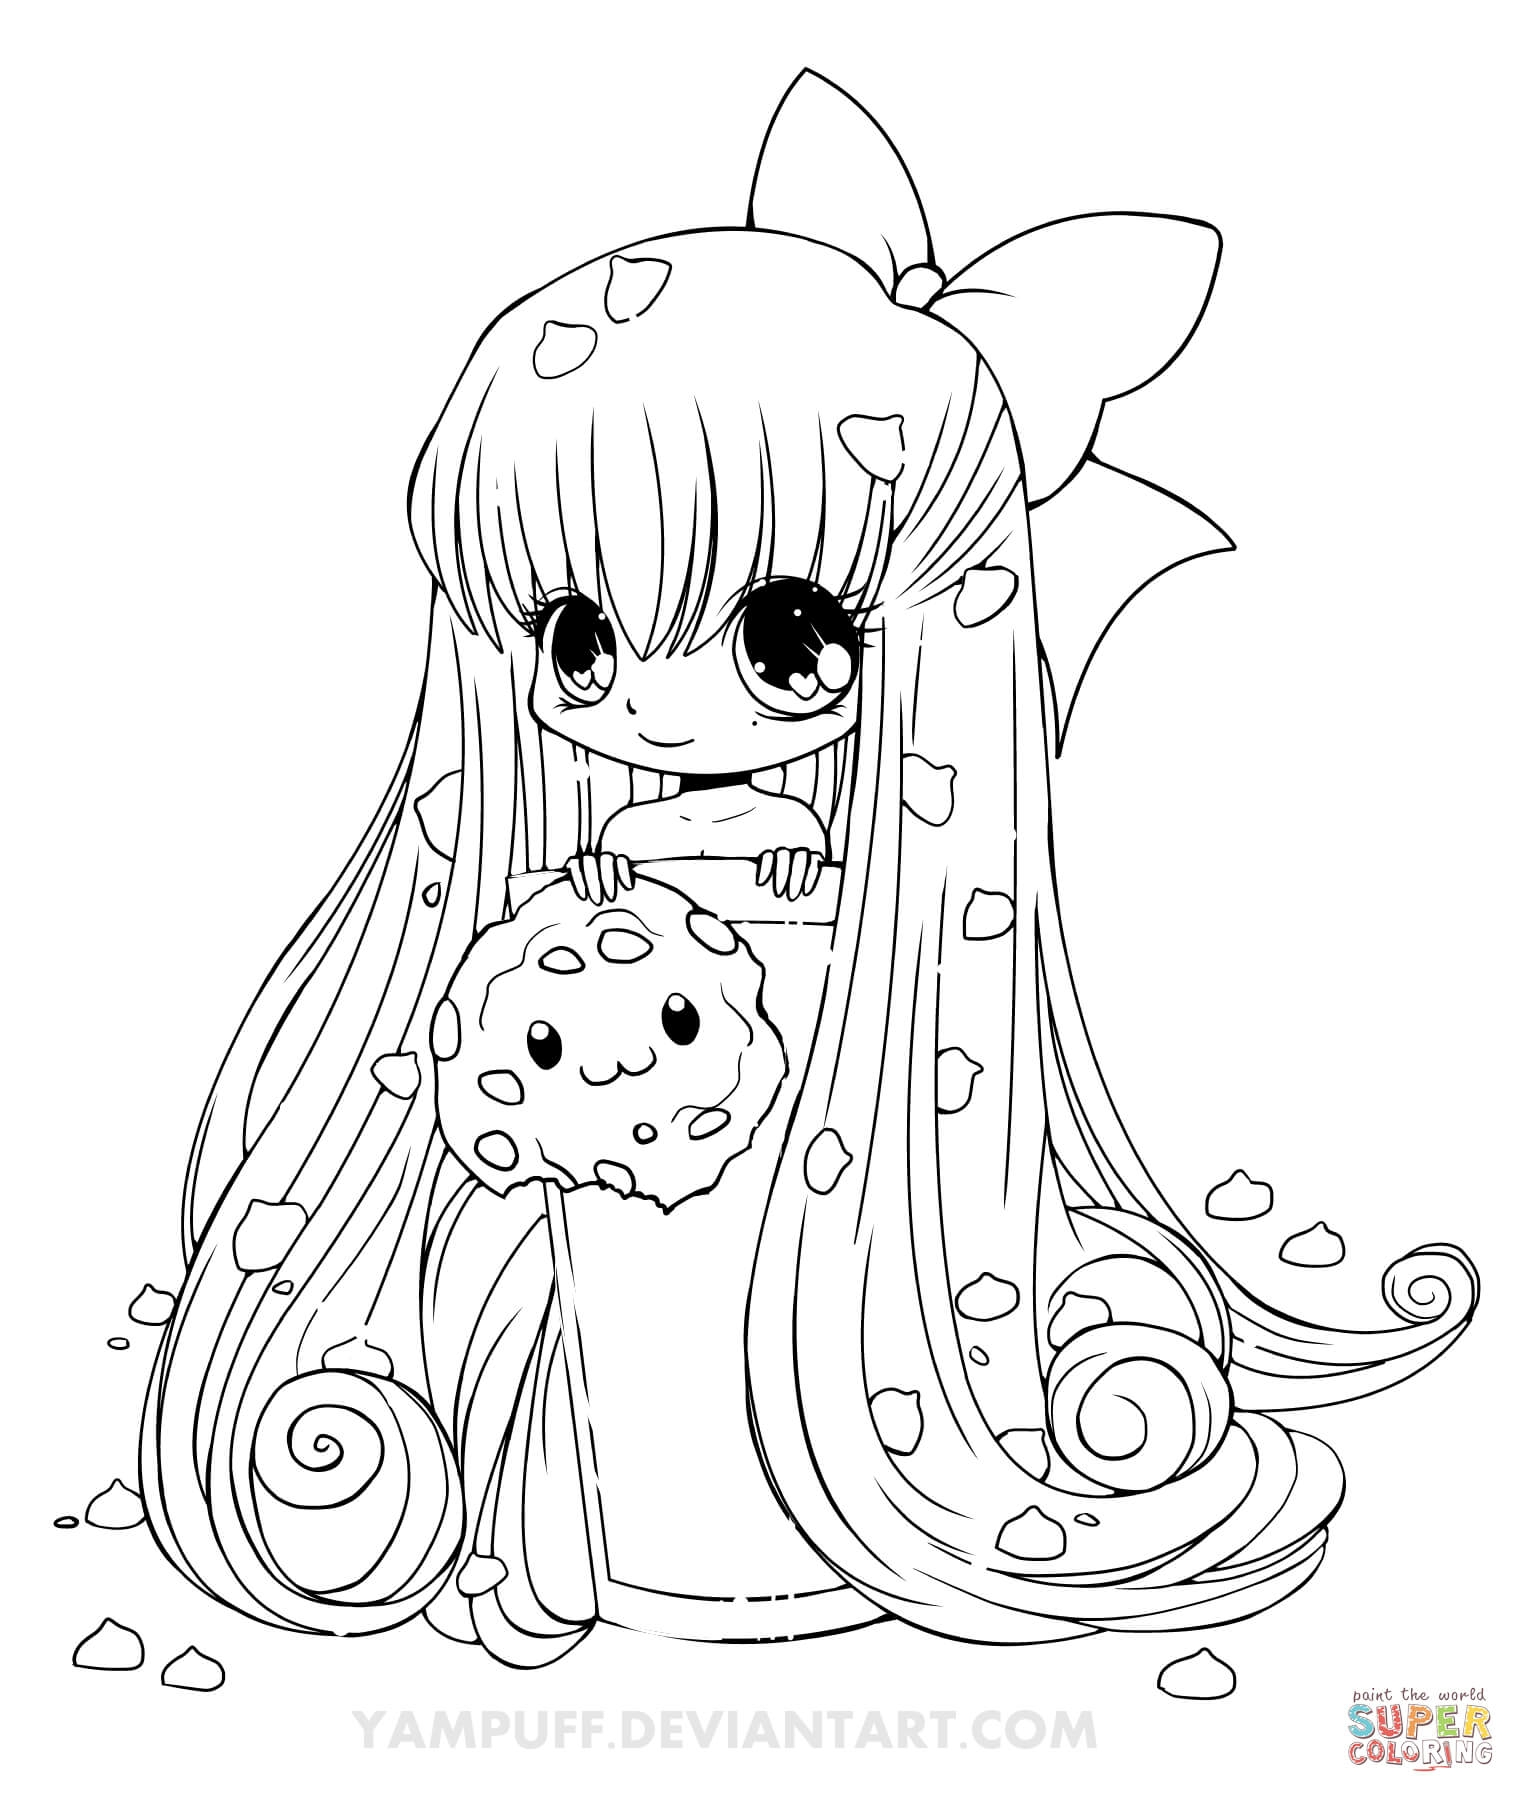 chibi girl coloring pages - chibi cookie girl